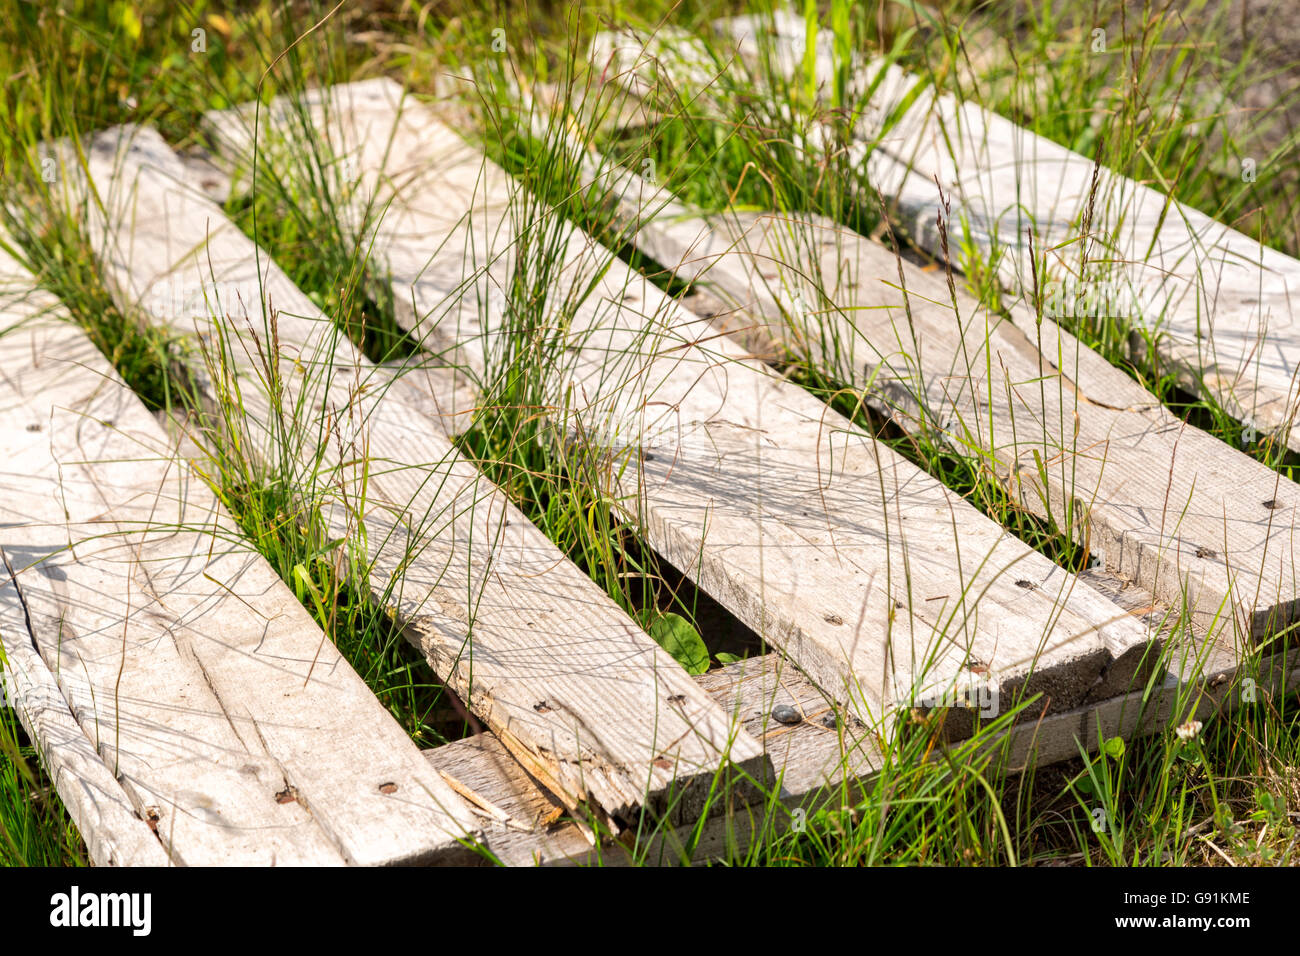 Box Pallet in Grass close up. - Stock Image